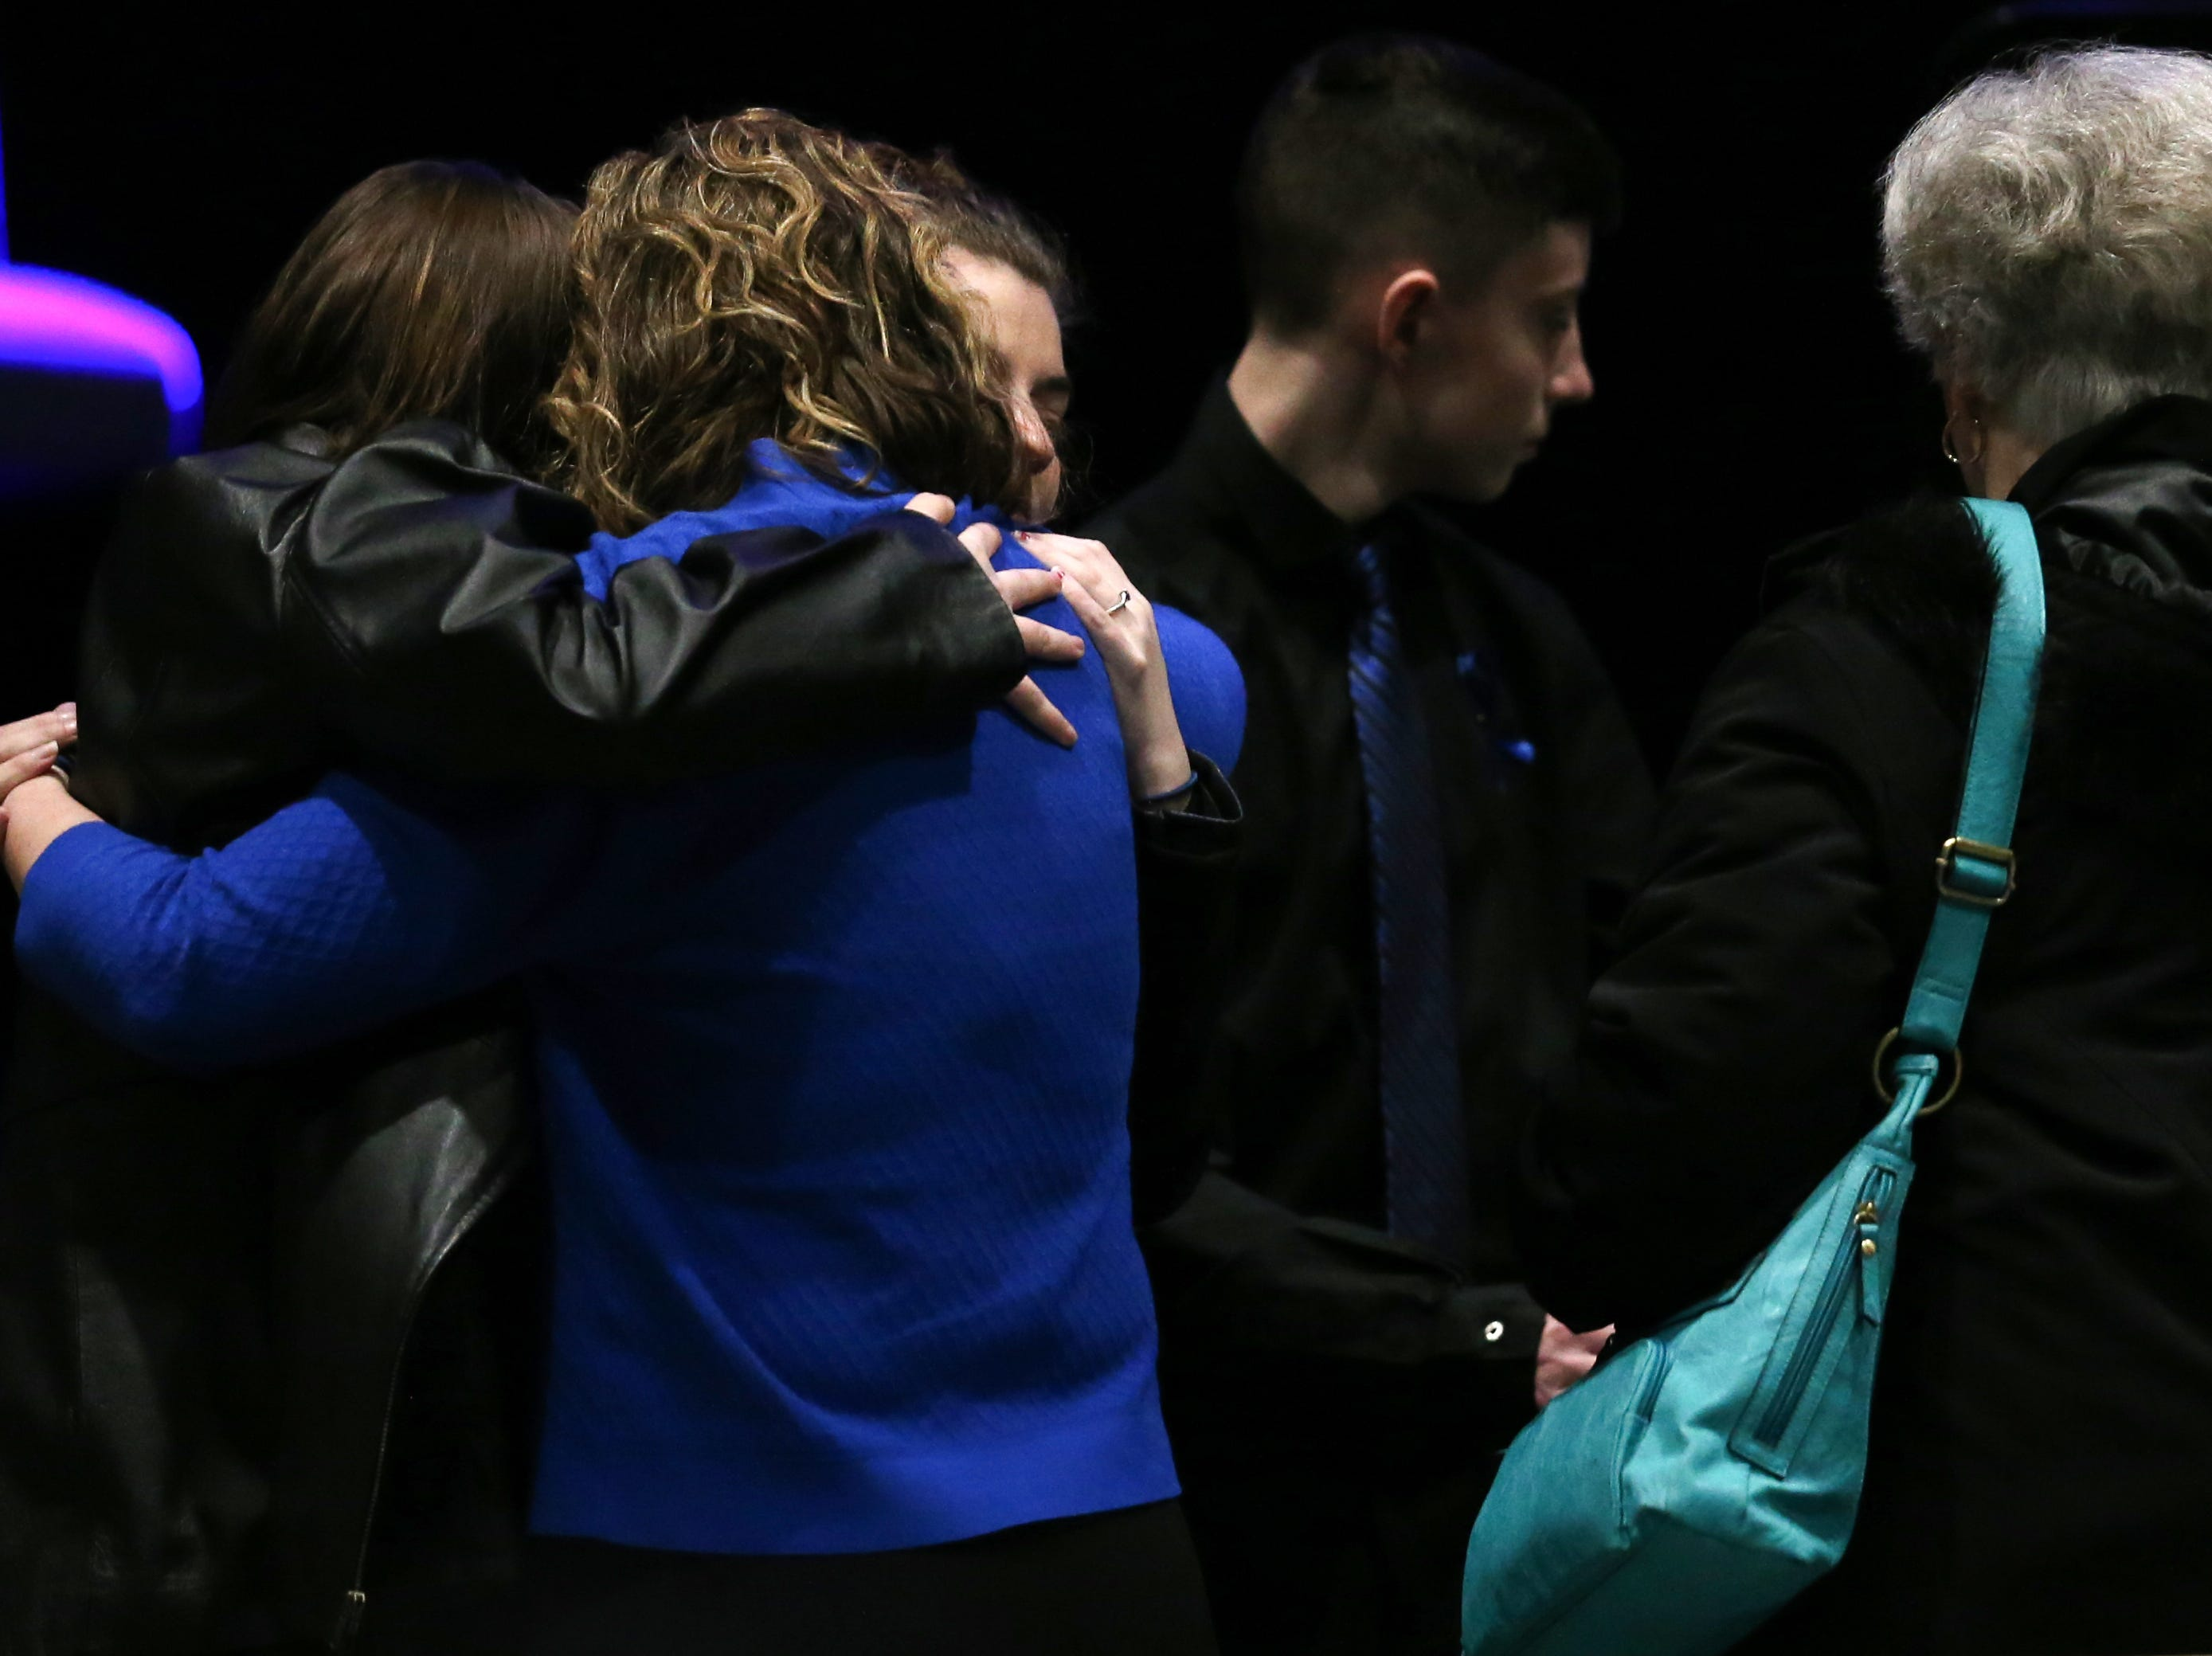 Jamie Brewer, widow of fallen Clermont County Sheriff's Detective William Lee Brewer Jr., is hugged during funeral services, Friday, Feb. 8, 2019, at Mount Carmel Christian Church in Union Township, Ohio. Brewer, a 20-year veteran of the Clermont County SheriffÕs Office, died in the line of duty. He was shot Feb. 2 during a standoff. Brewer, 42, of Pierce Township, is survived by his wife, Jamie, and a 5-year-old son, Braxton. (Kareem Elgazzar/The Cincinnati Enquirer)